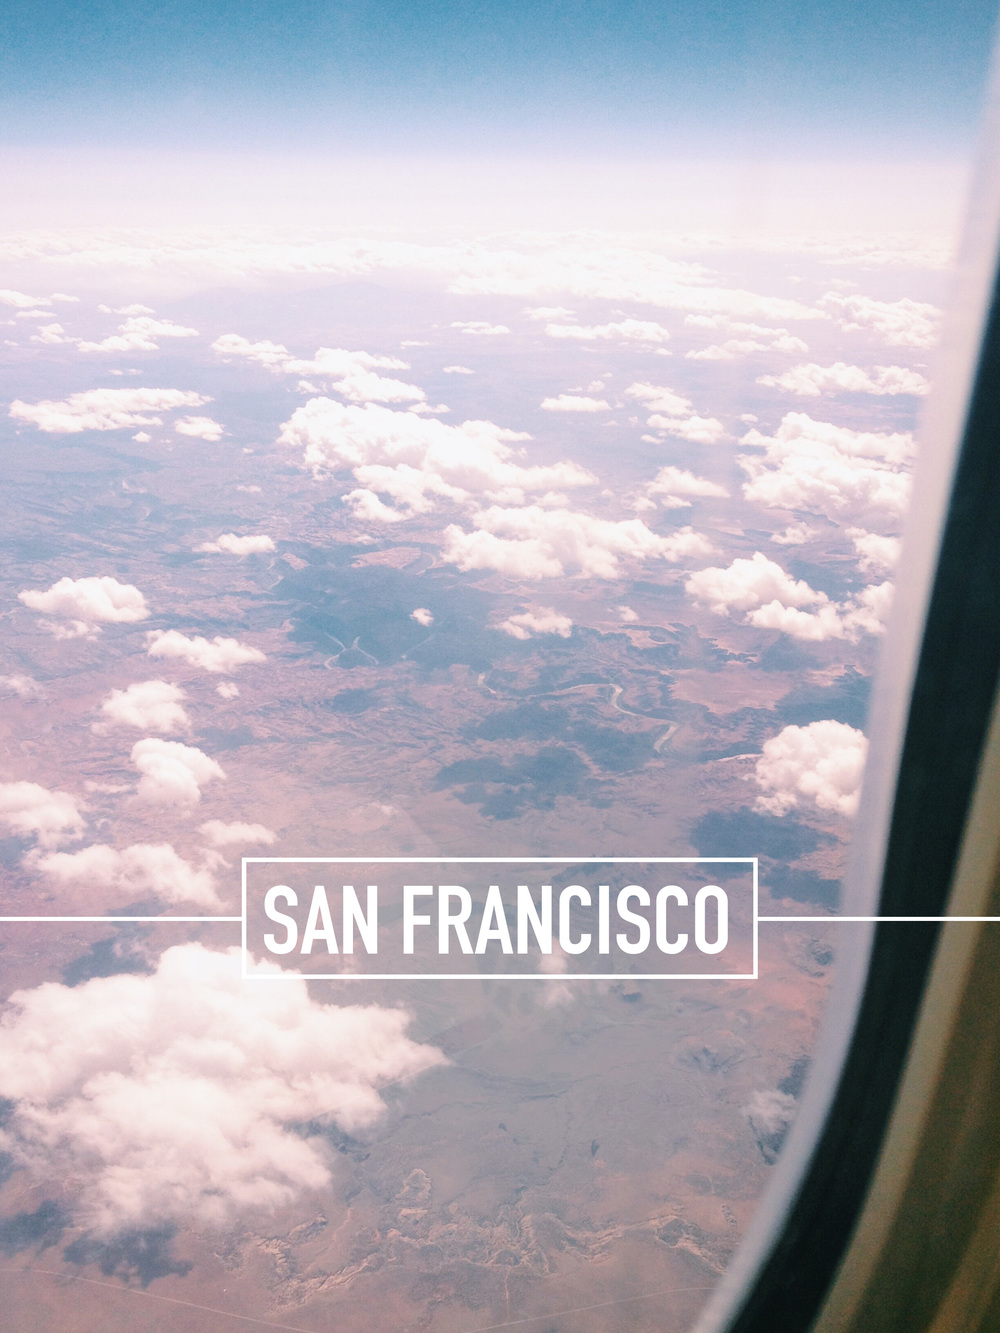 San Francisco flight